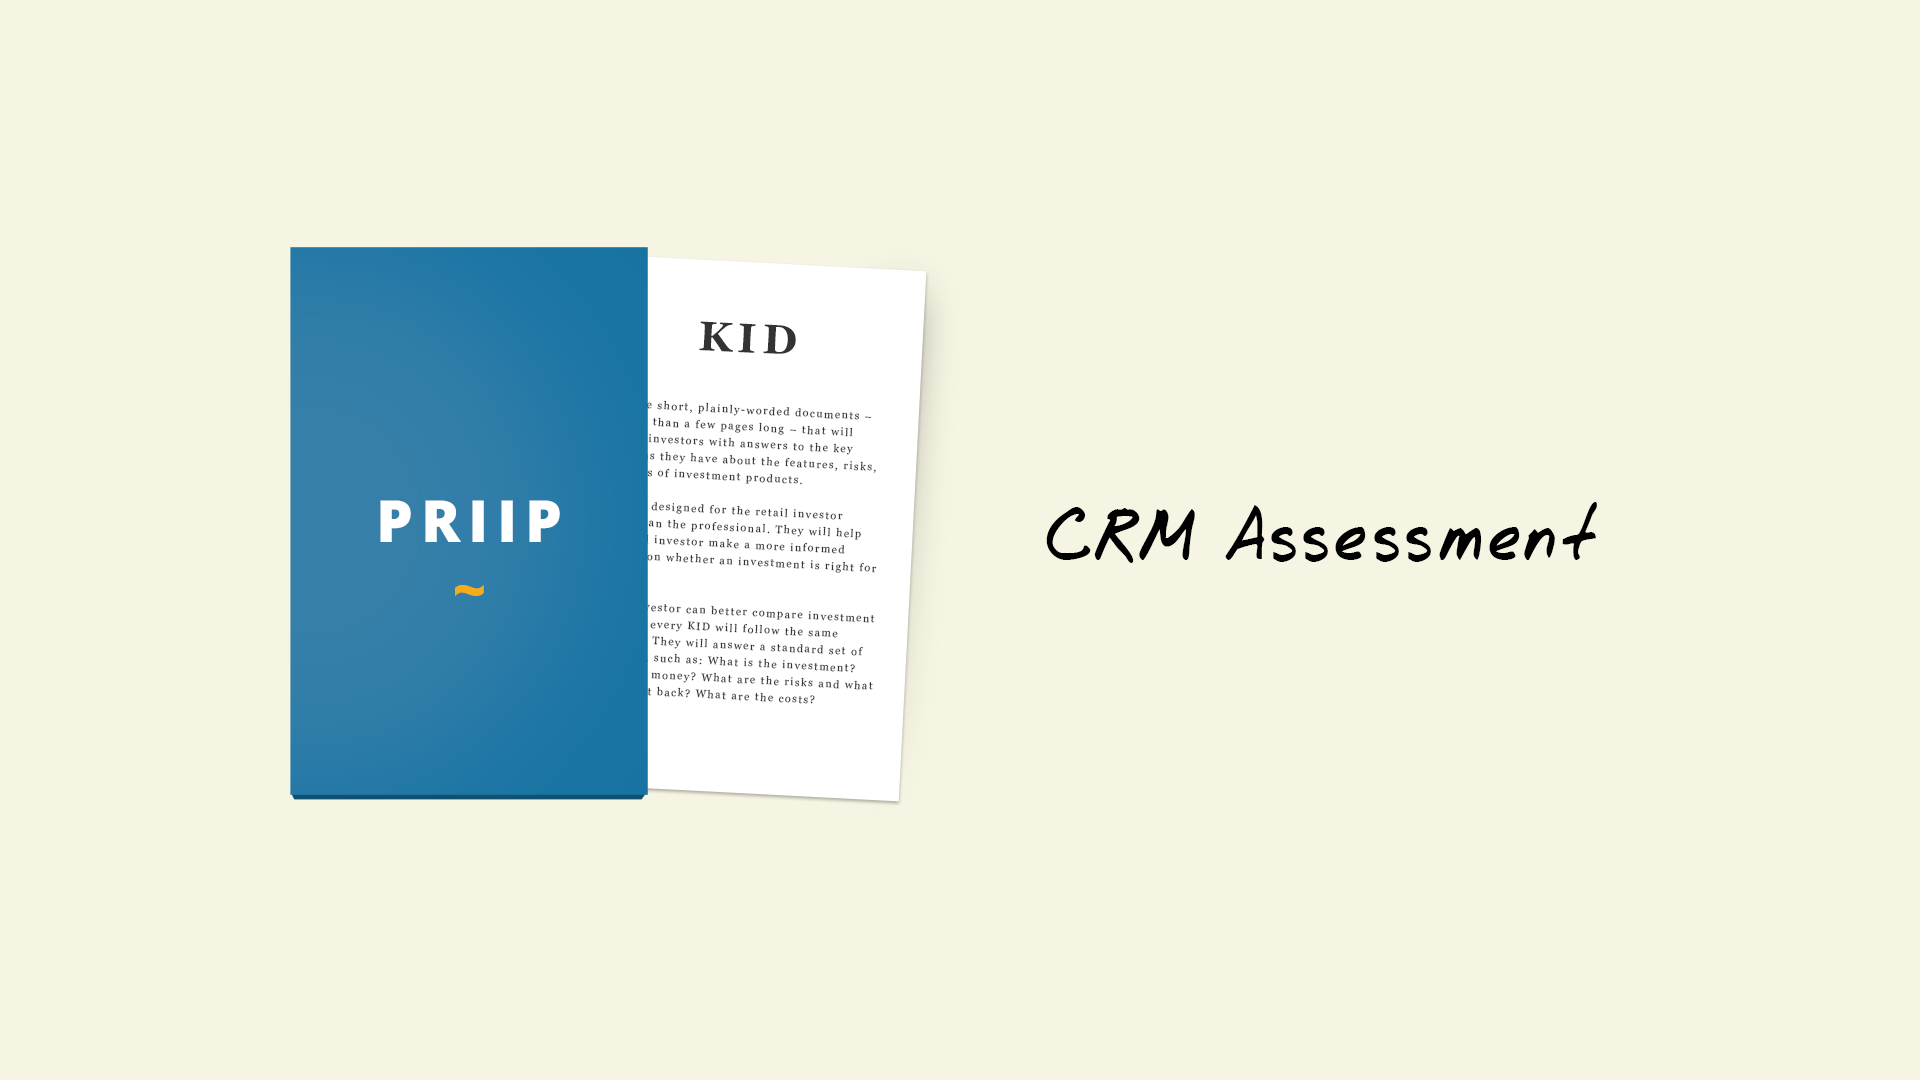 kids for priids crm assessment